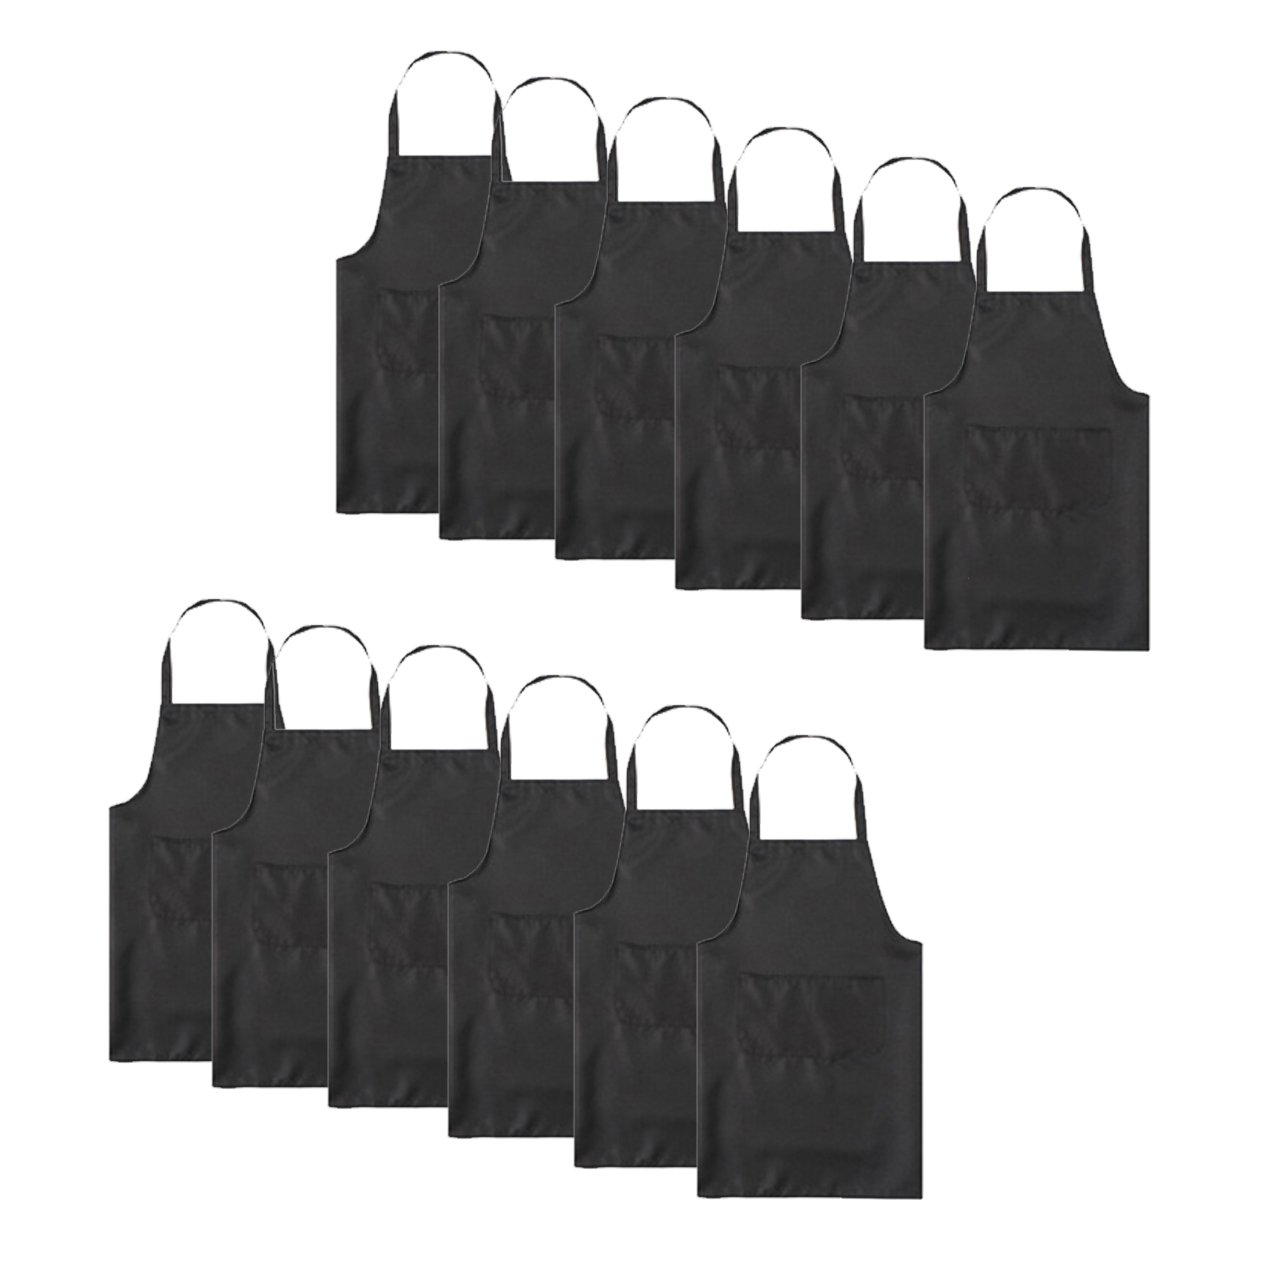 TSD STORY 12 PCS Black Plain Color Bib Aprons Bulk for Women Men Unisex Adult with 2 Front Pockets-Chef Kitchen Server Grill Restaurant Cooking Baking Painting Aprons for Party or Class(Black-24 x28)